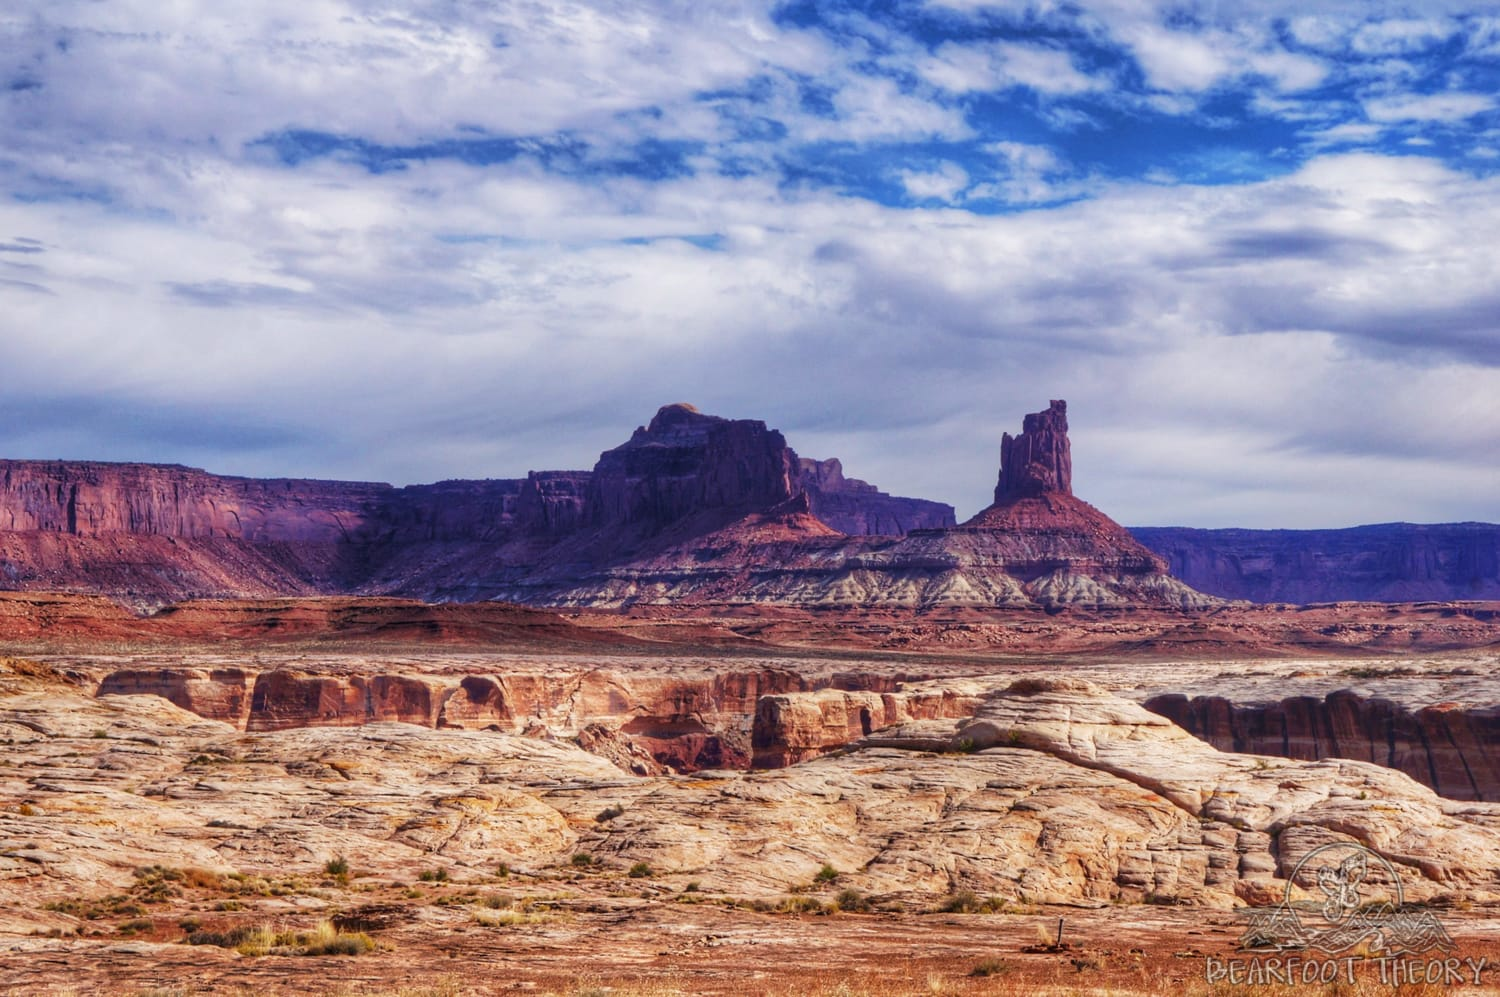 Day three of biking on the White Rim Trail in Canyonlands National Park